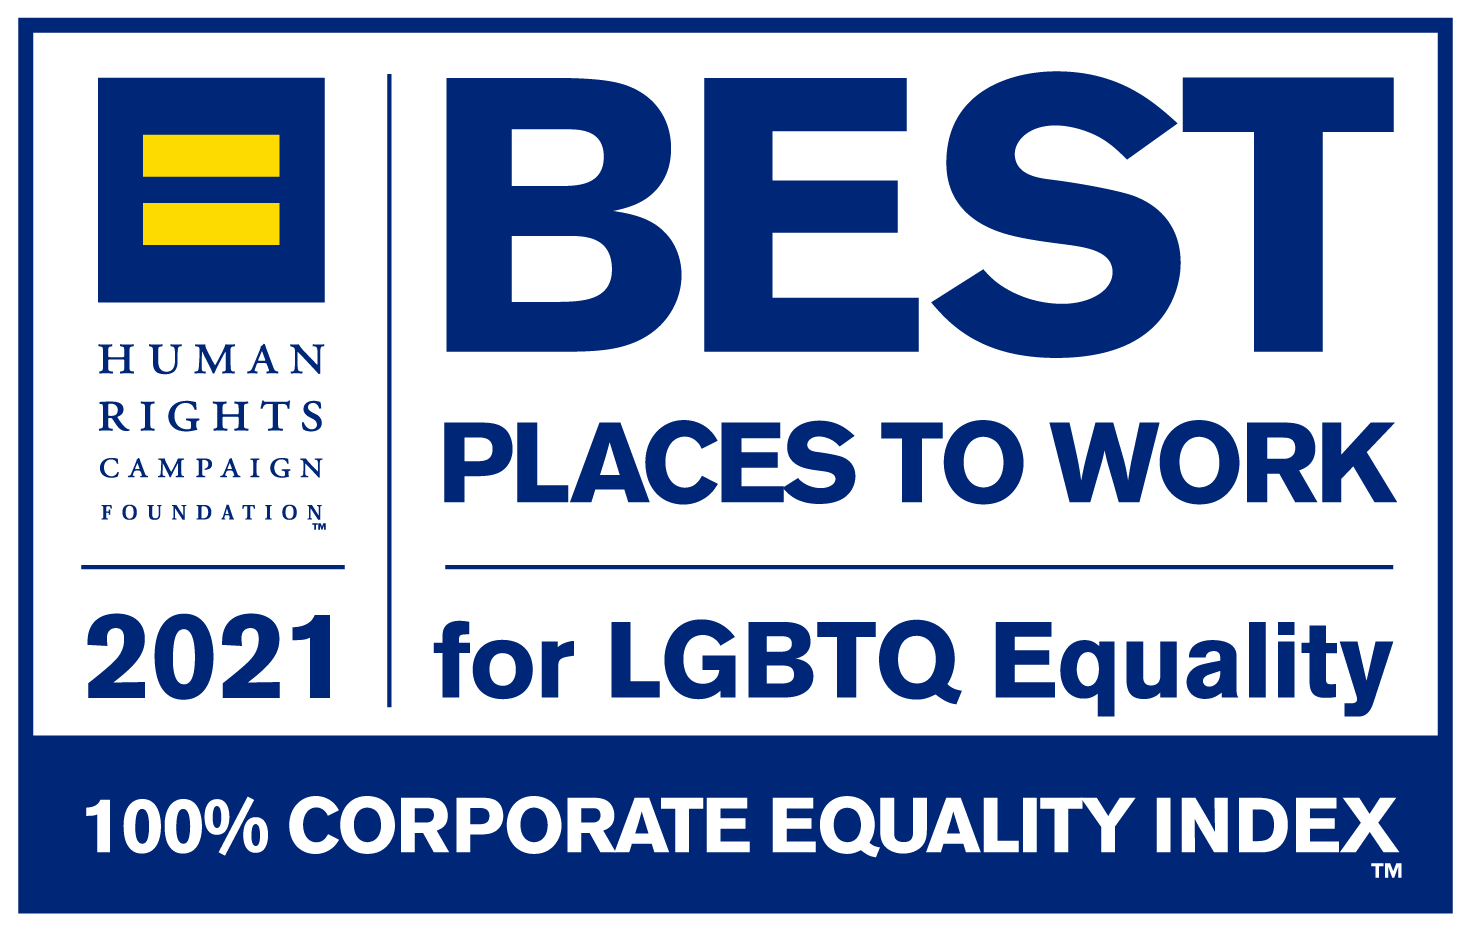 Human Rights Campaign's 2021 Best Places to Work for LGBTQ Equality